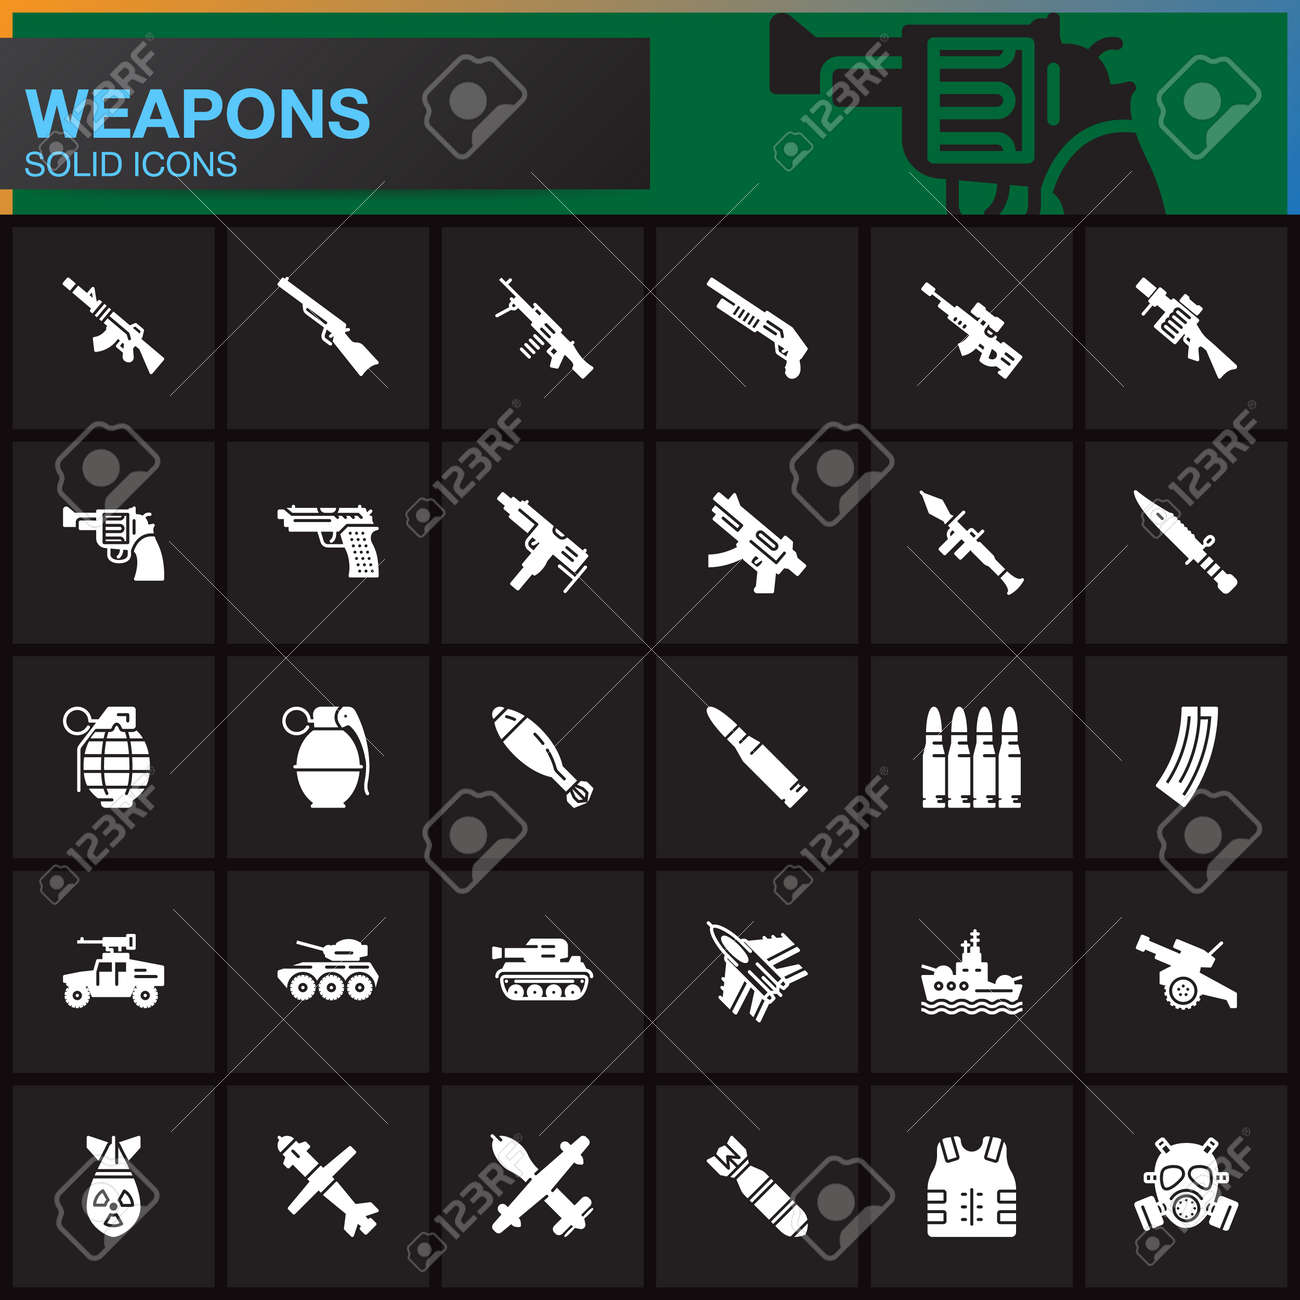 Weapons Vector Icons Set Arms Solid Symbol Collection Filled